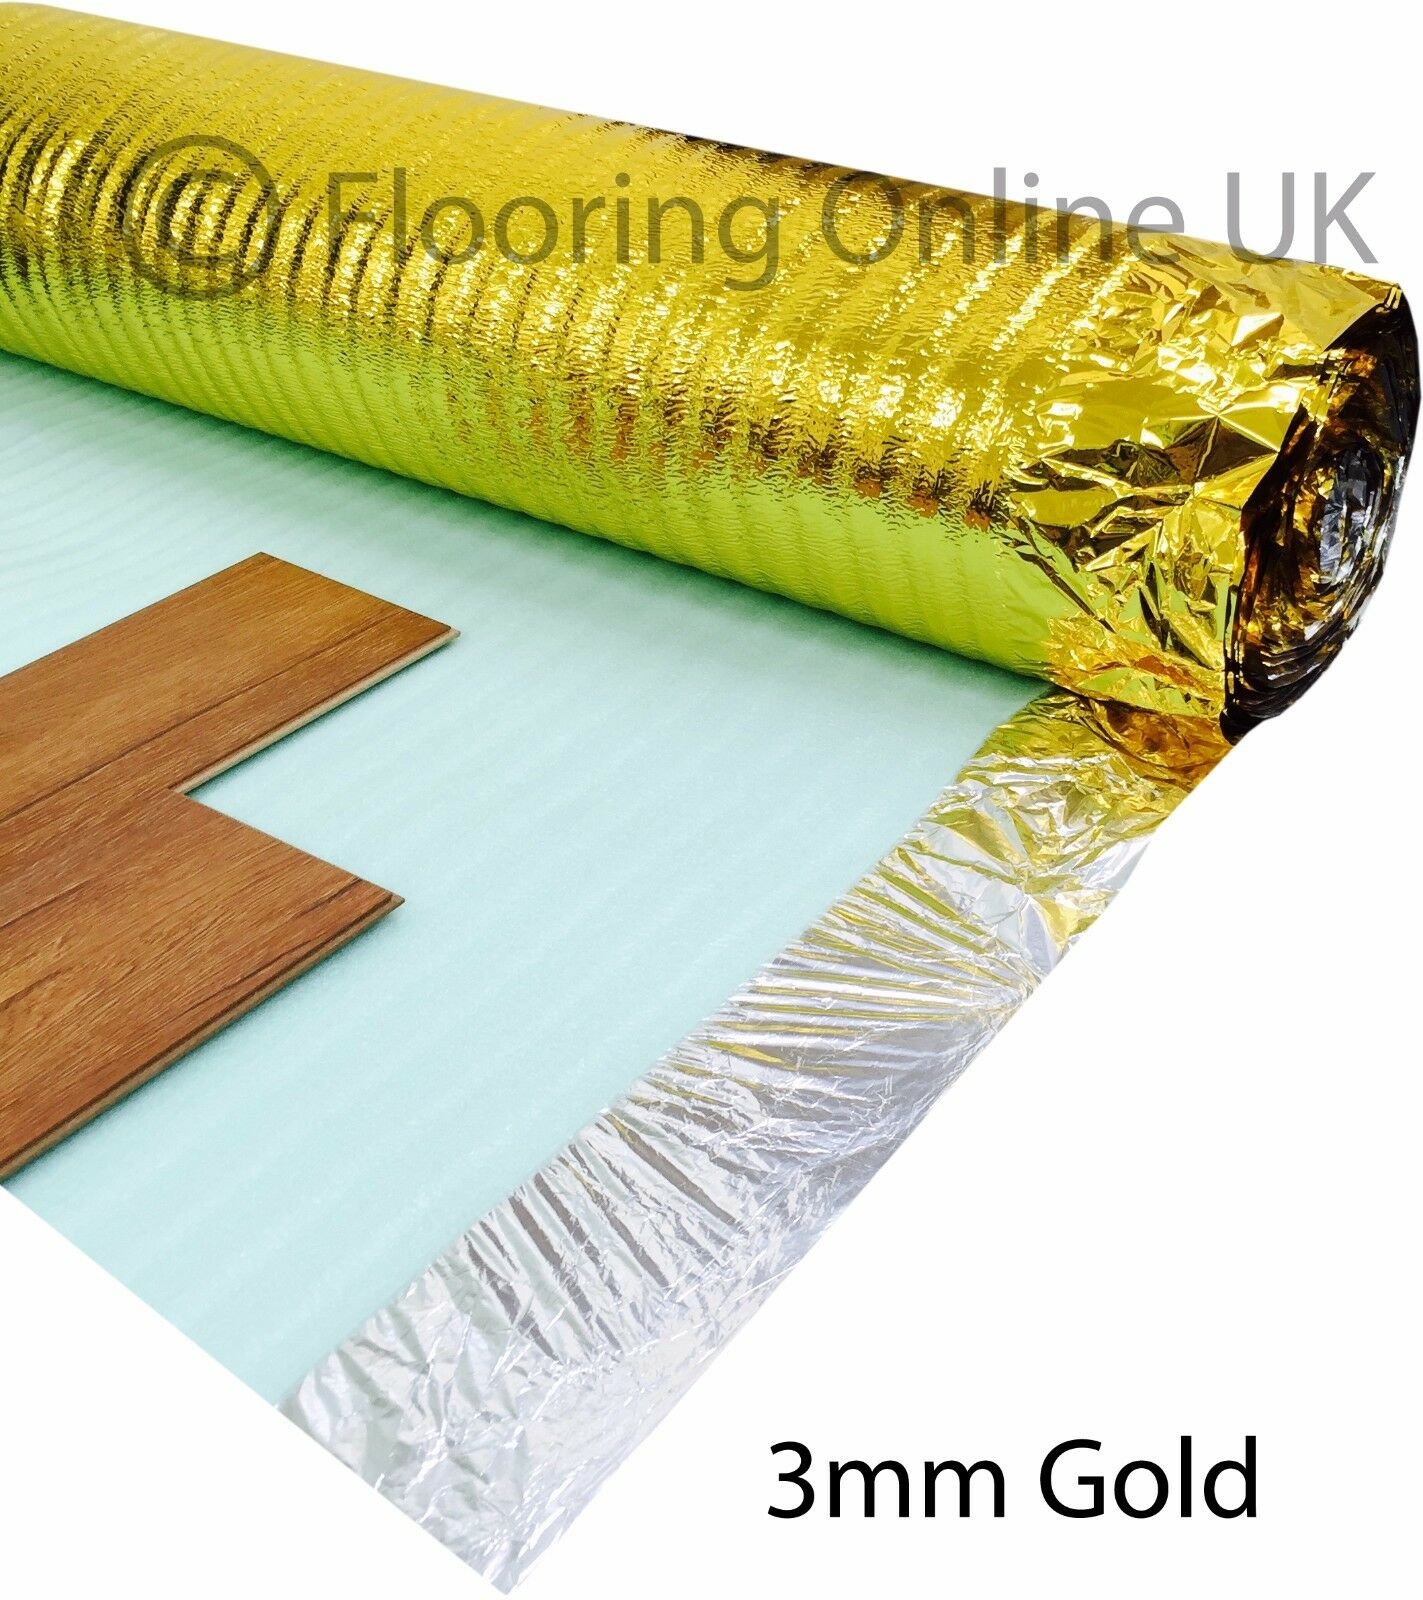 15m2 Deal 3mm Comfort Gold Acoustic Underlay For Wood Laminate Sonic